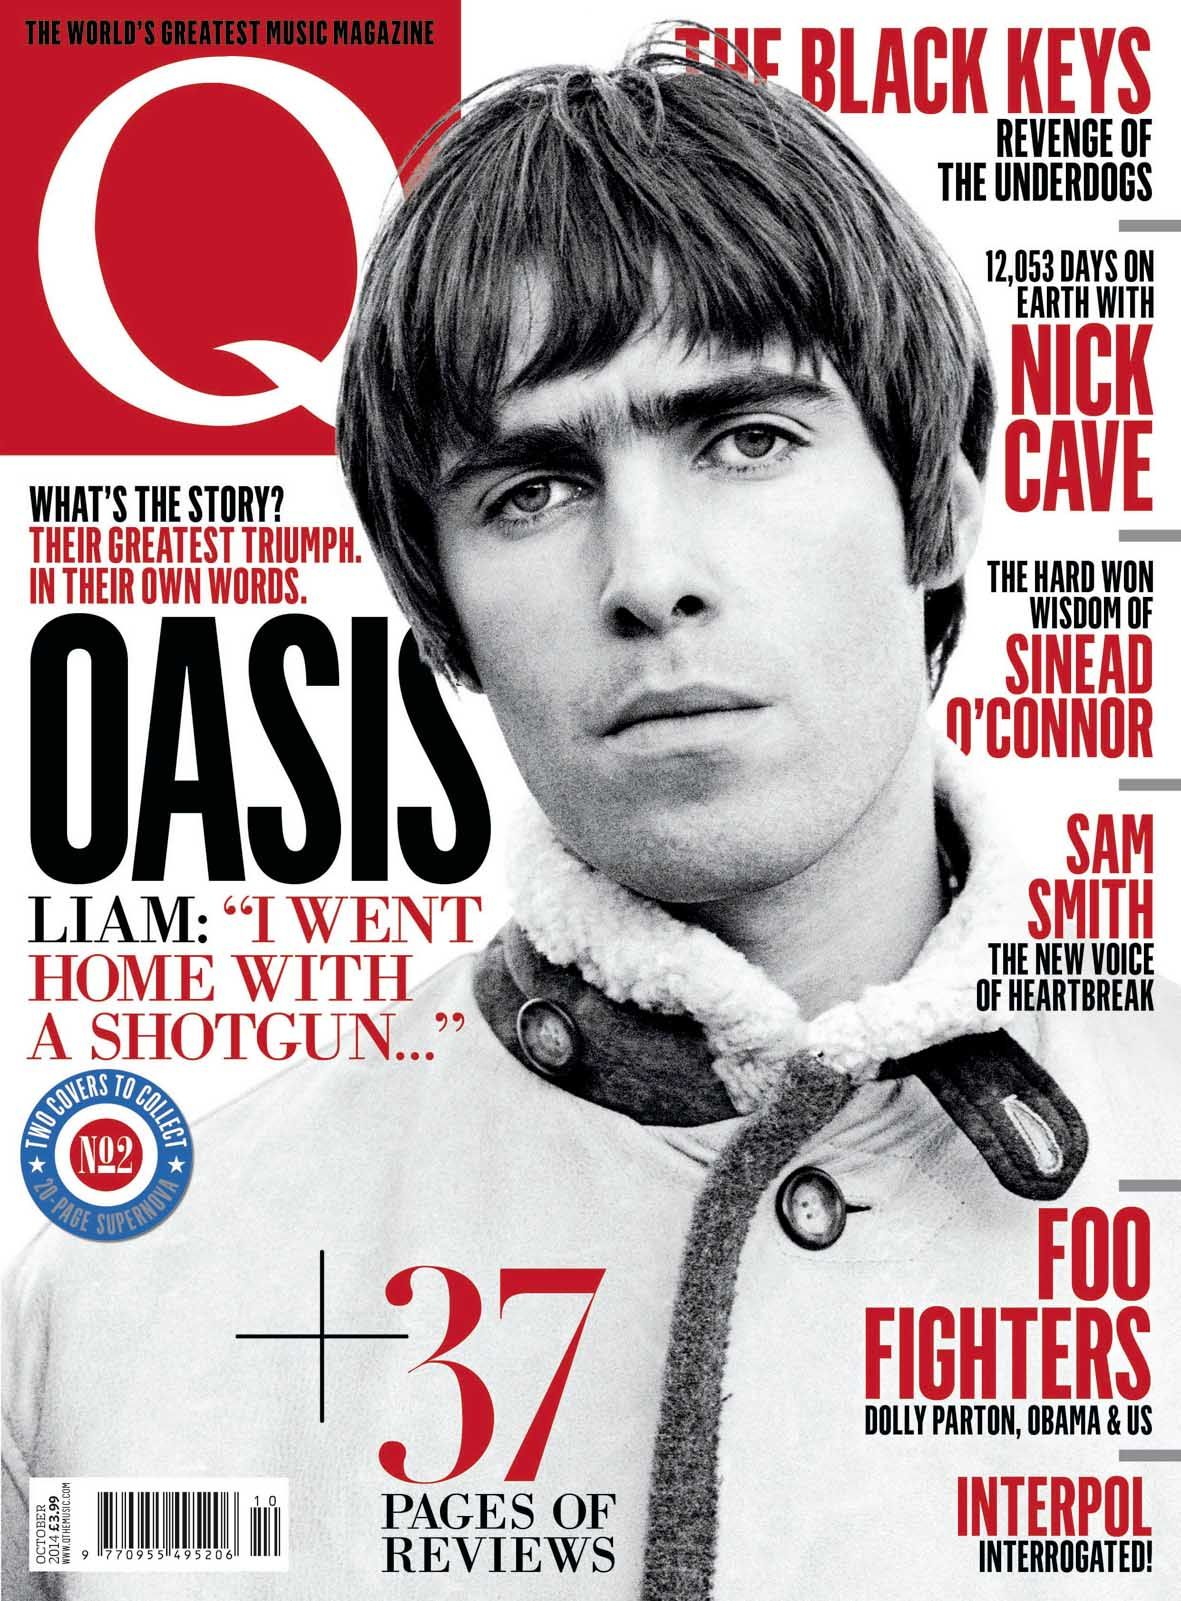 Pin by Q Magazine on Q's covers and more in 2019 Music